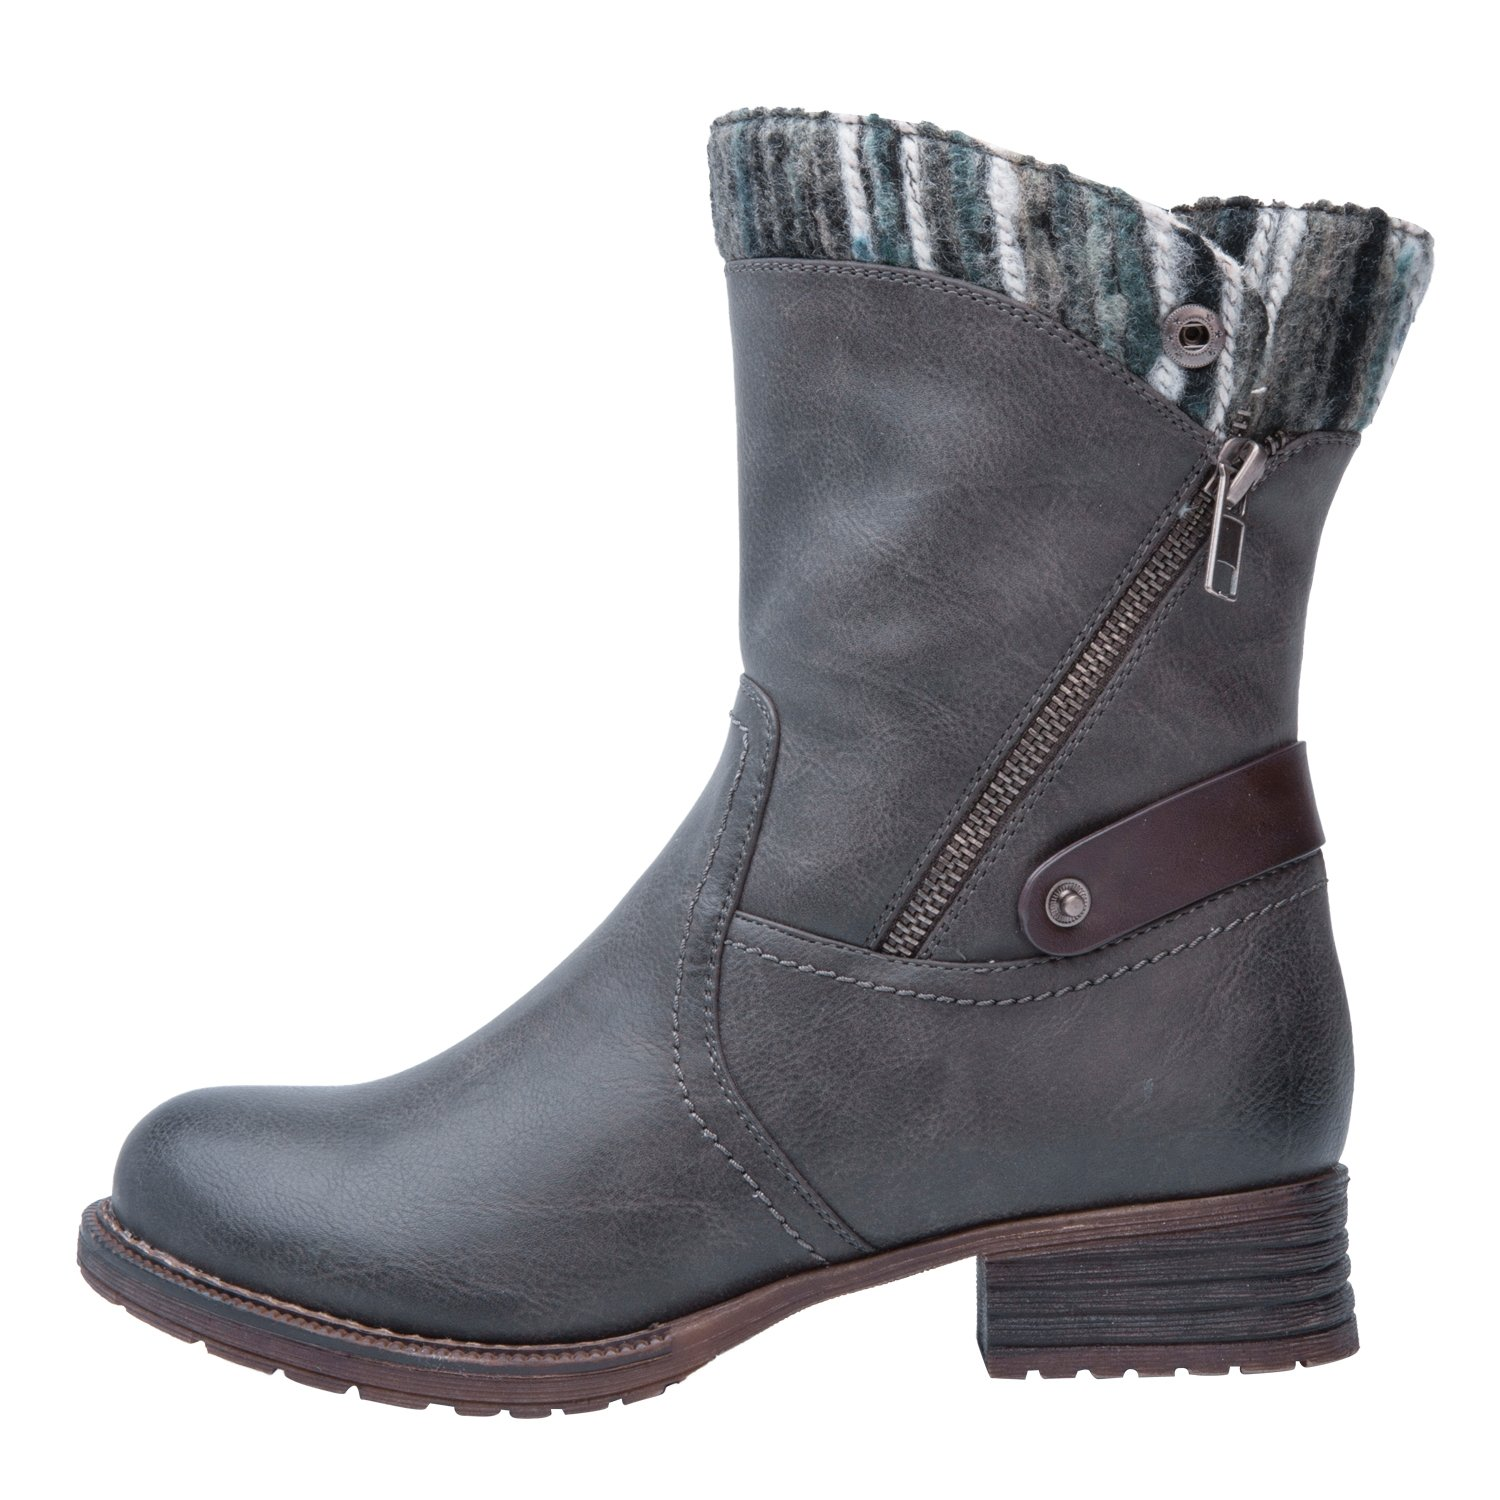 Global Win GLOBALWIN Women's KadiMaya16YY26 Boots B01HN71UGU 8.5 B(M) US|Grey